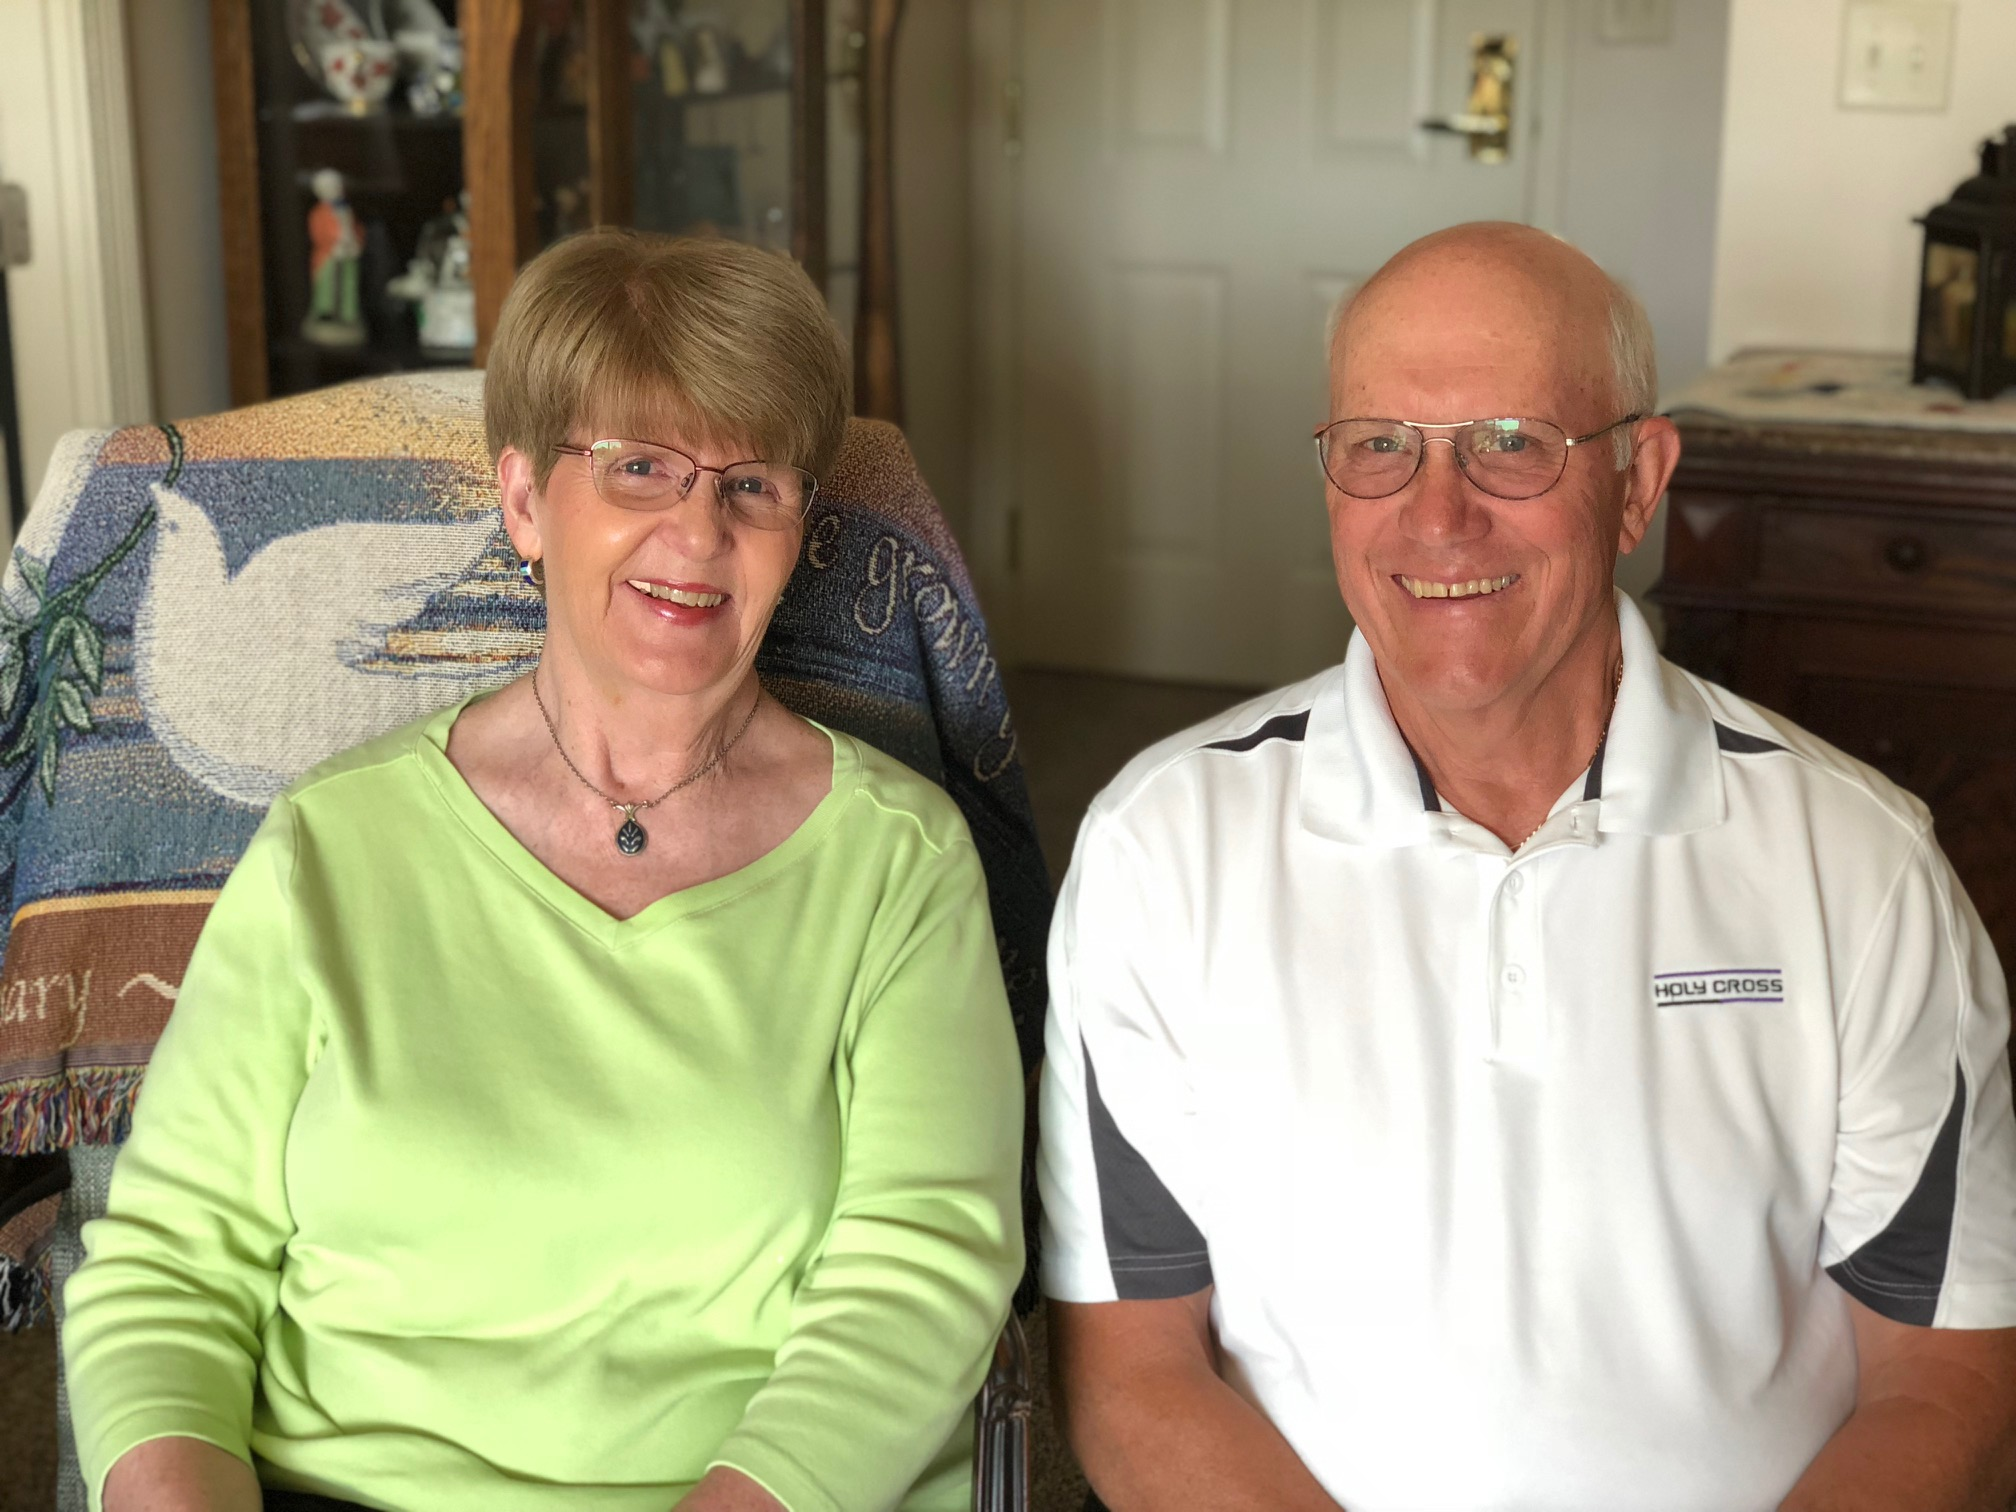 Bill and Susan Humberd in their home at Linden Ponds.